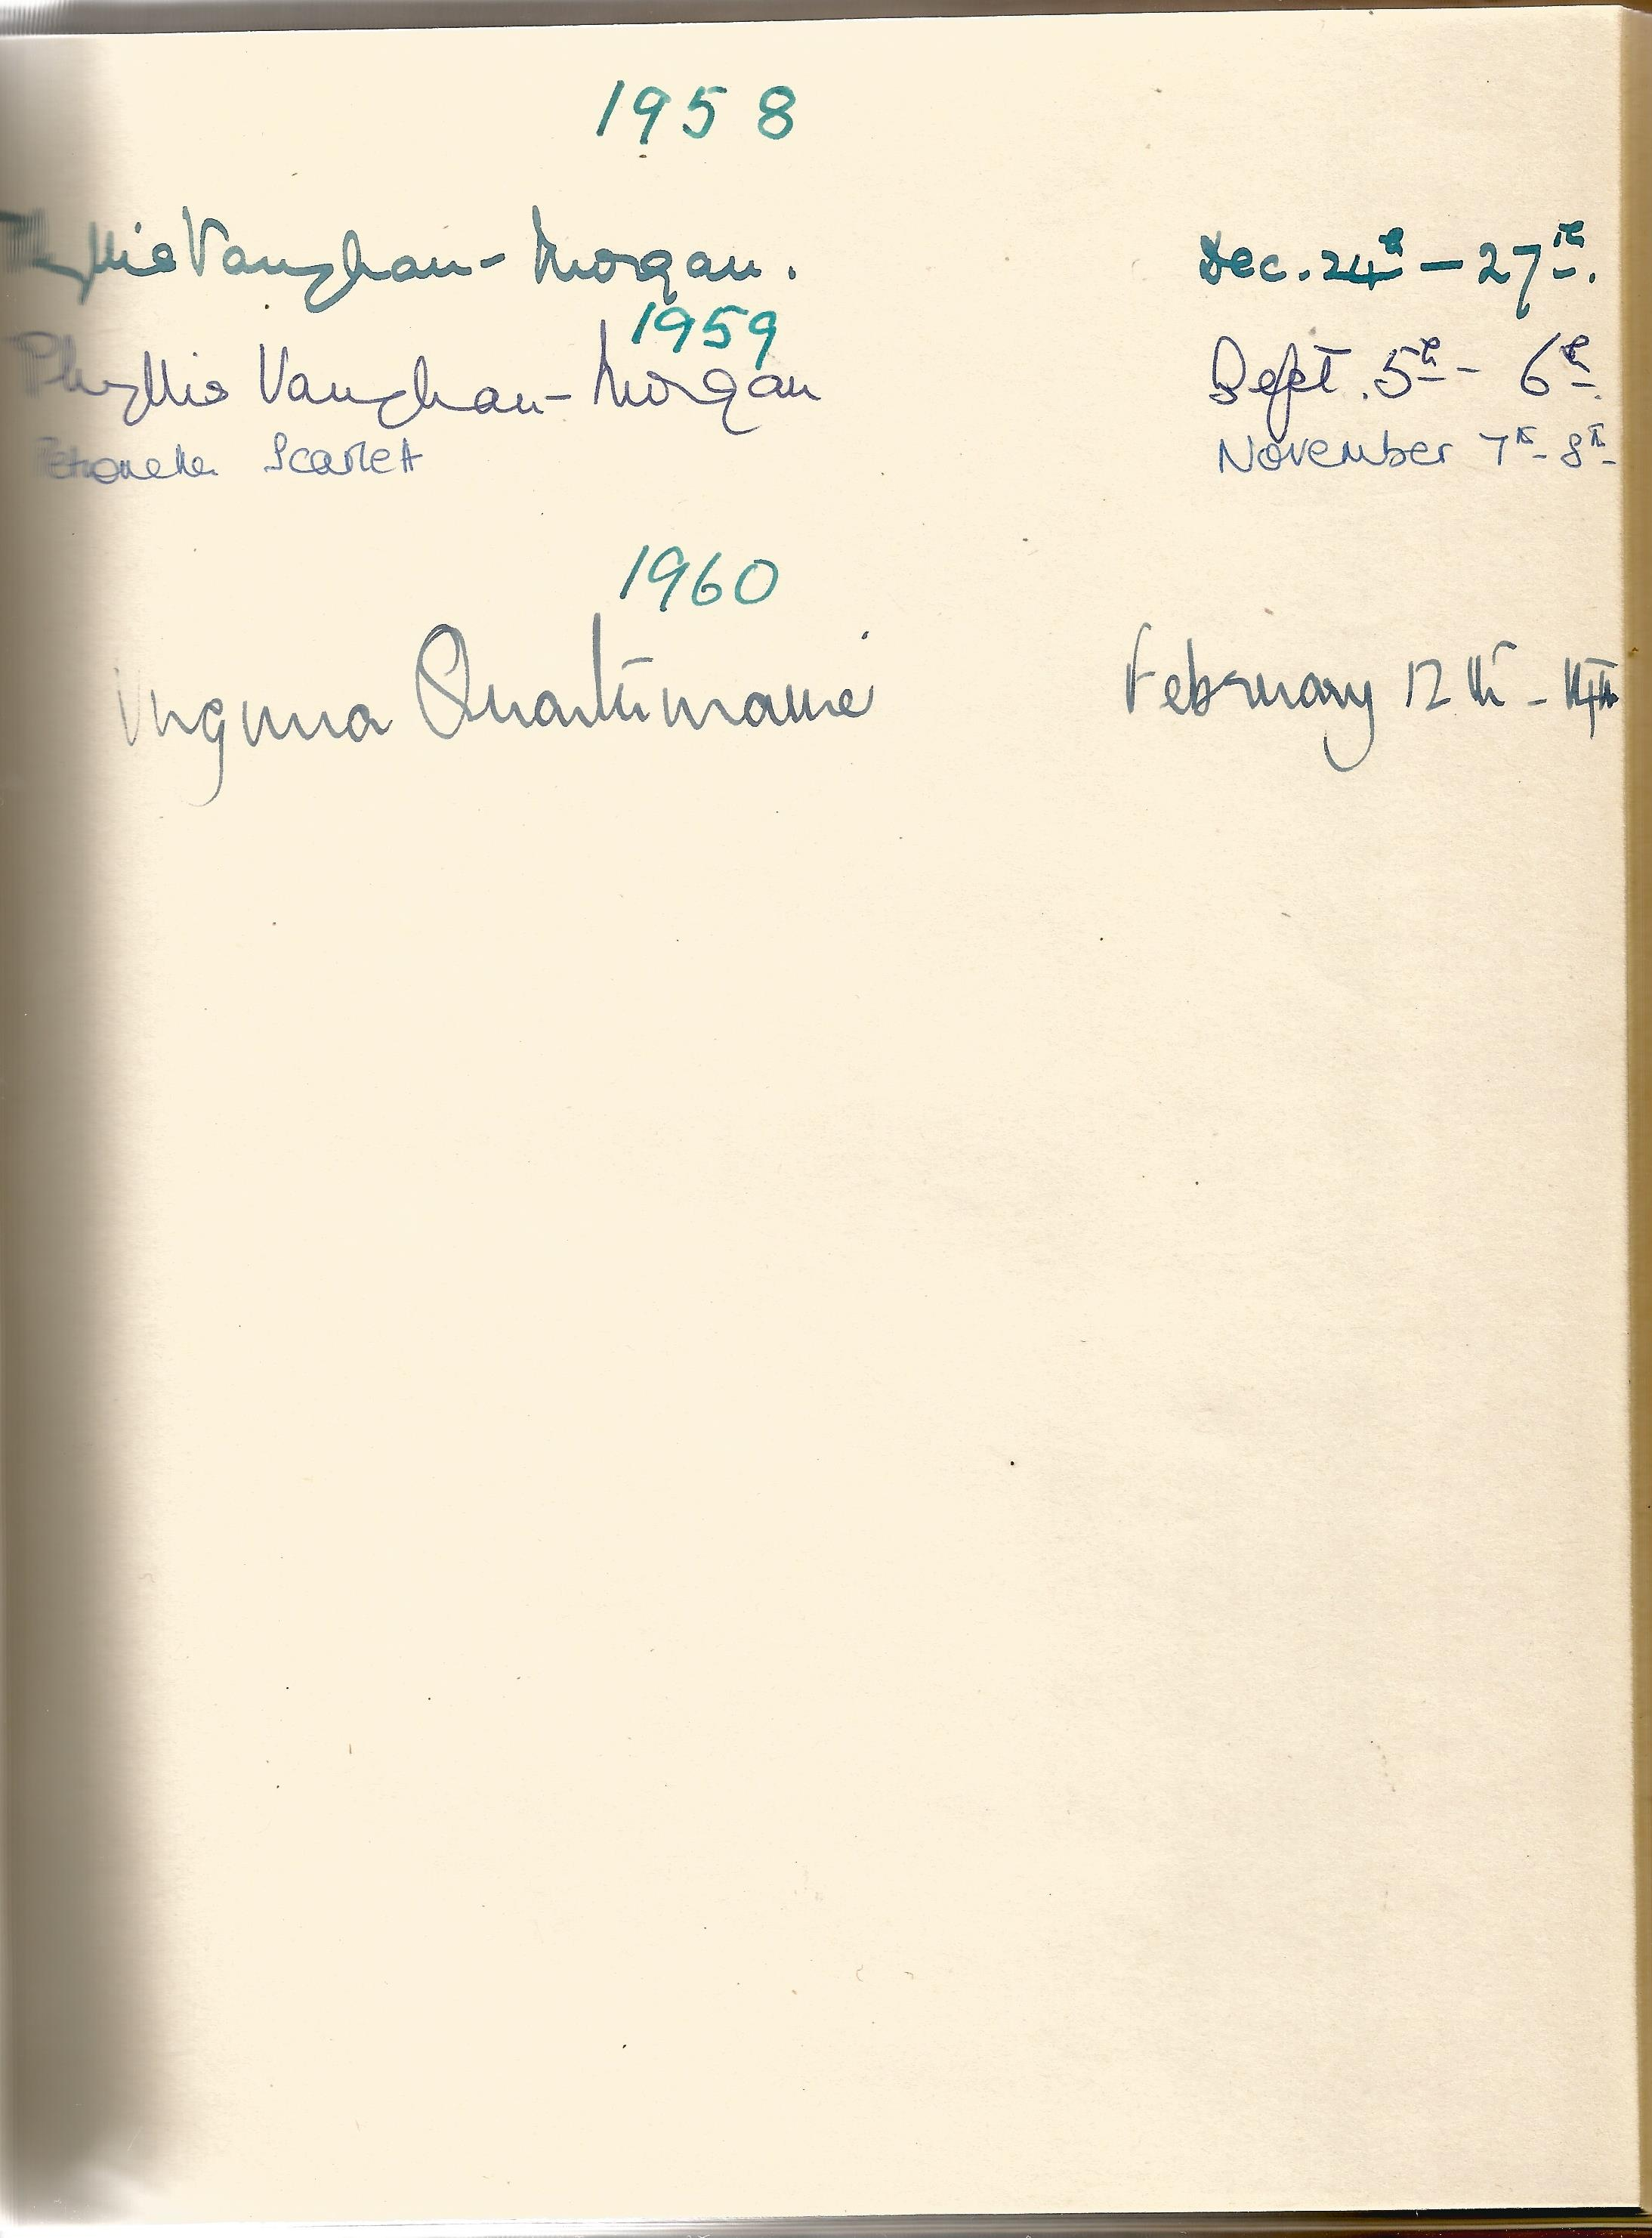 Hardback Book Expensively made visitors Book with slipcase JVM, EVM & 1949 in Gold Lettering on - Image 8 of 8